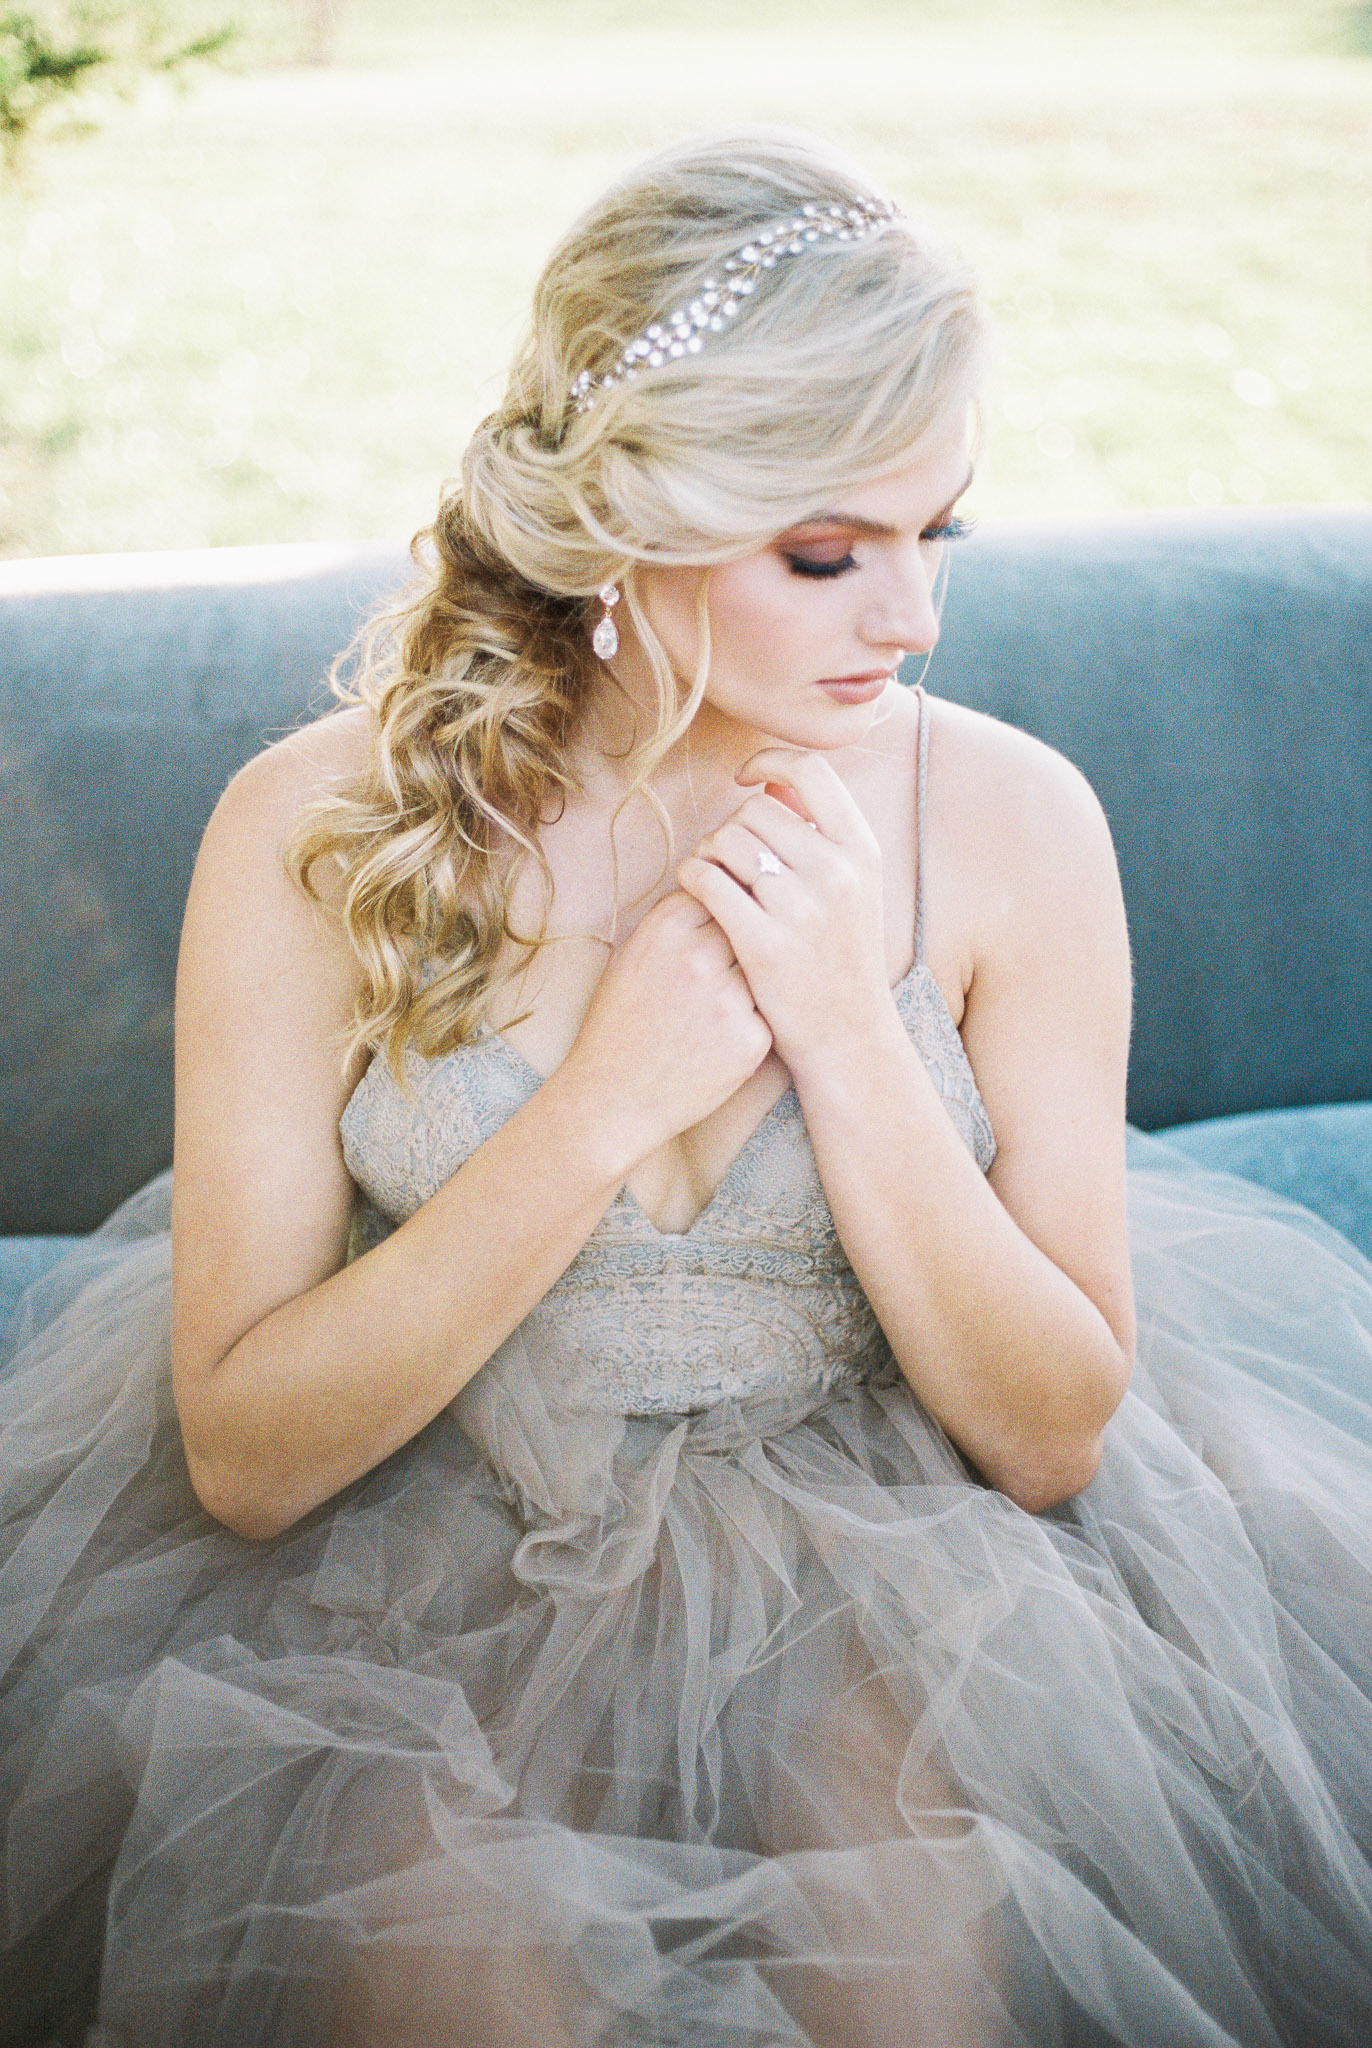 PSC-hair-artistry-bridal-hairstyle-with-accessories